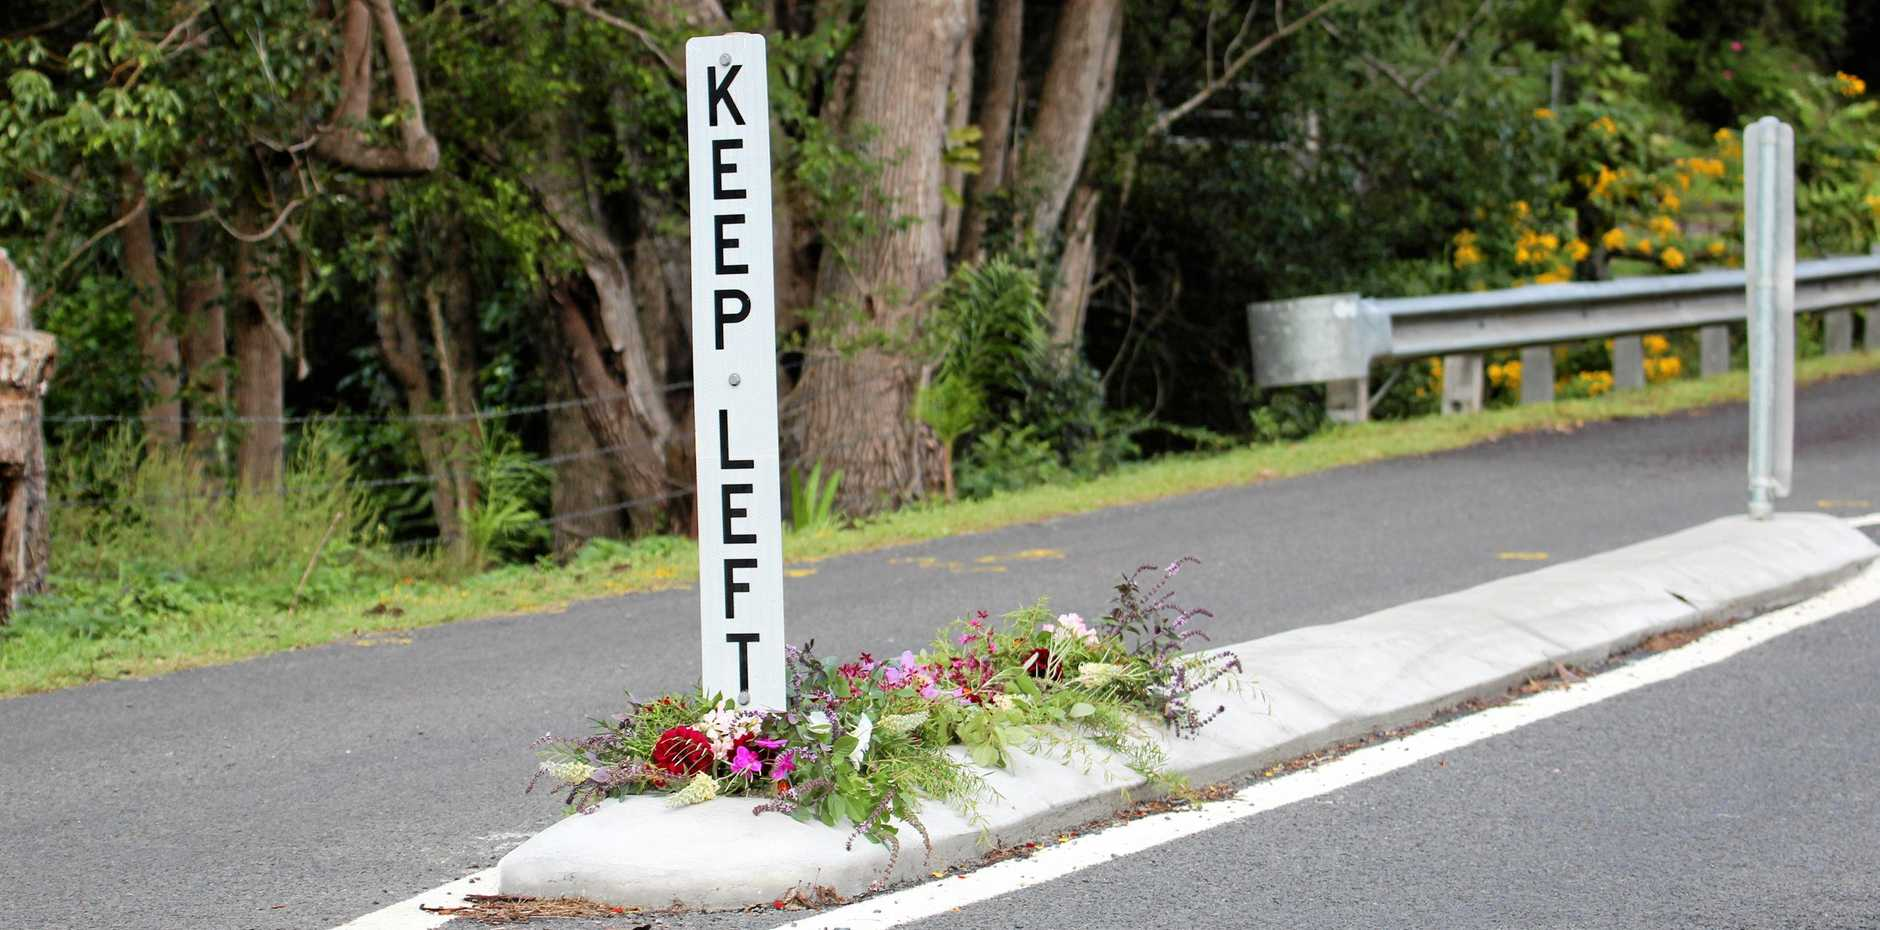 Flowers on Cecil St, Nimbin, where a woman was fatally struck by a vehicle in a hit-and-run incident overnight.